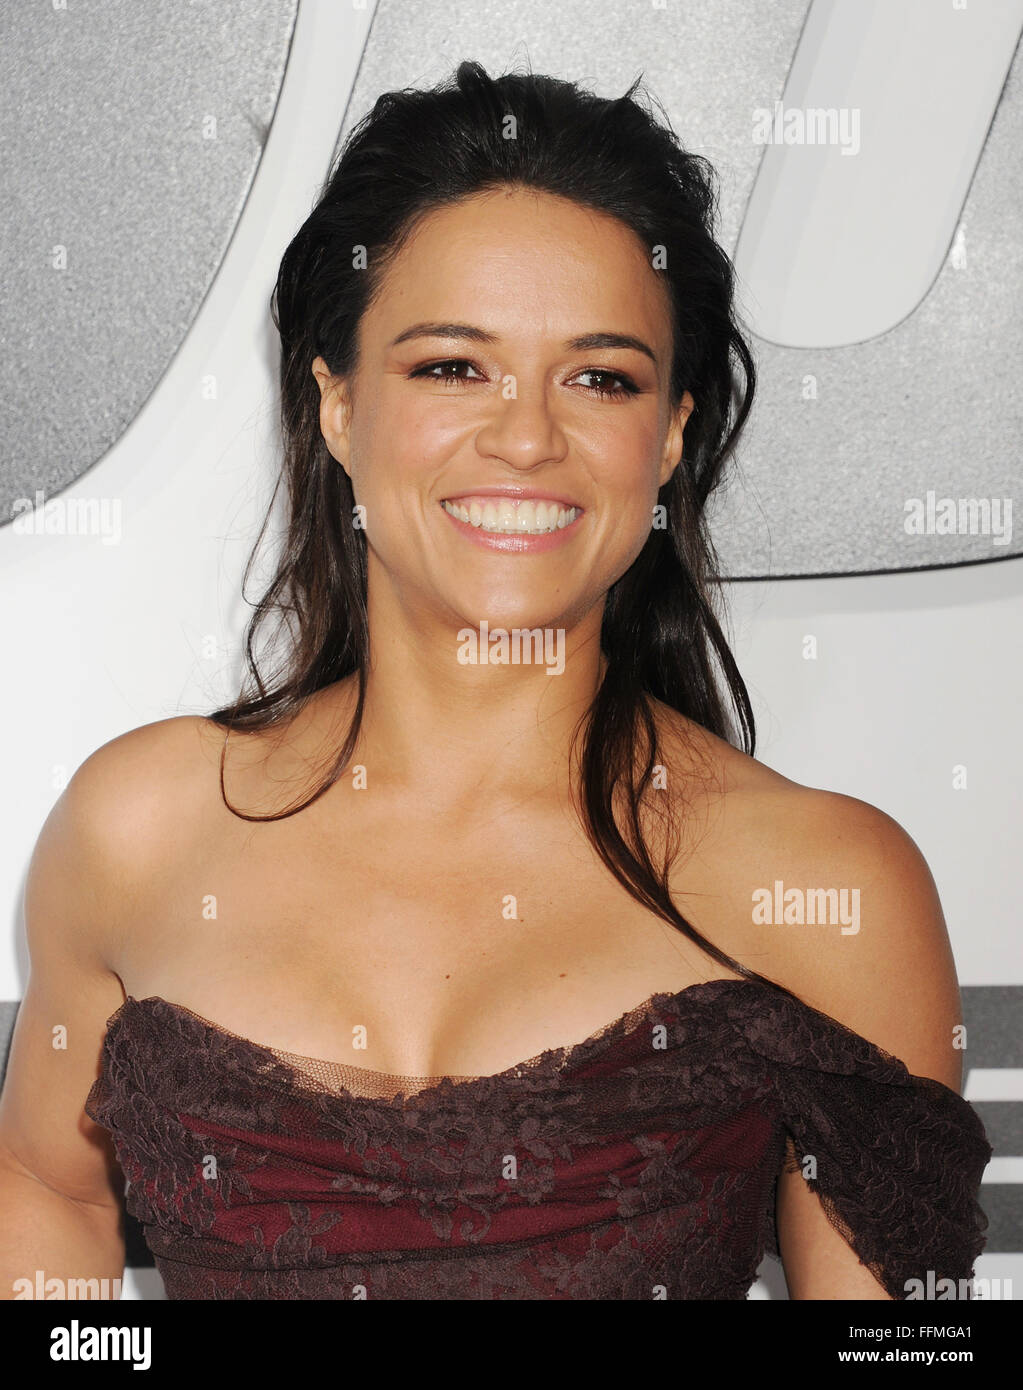 Actress Michelle Rodriguez arrives at the 'Furious 7' - Los Angeles Premiere at TCL Chinese Theatre IMAX - Stock Image